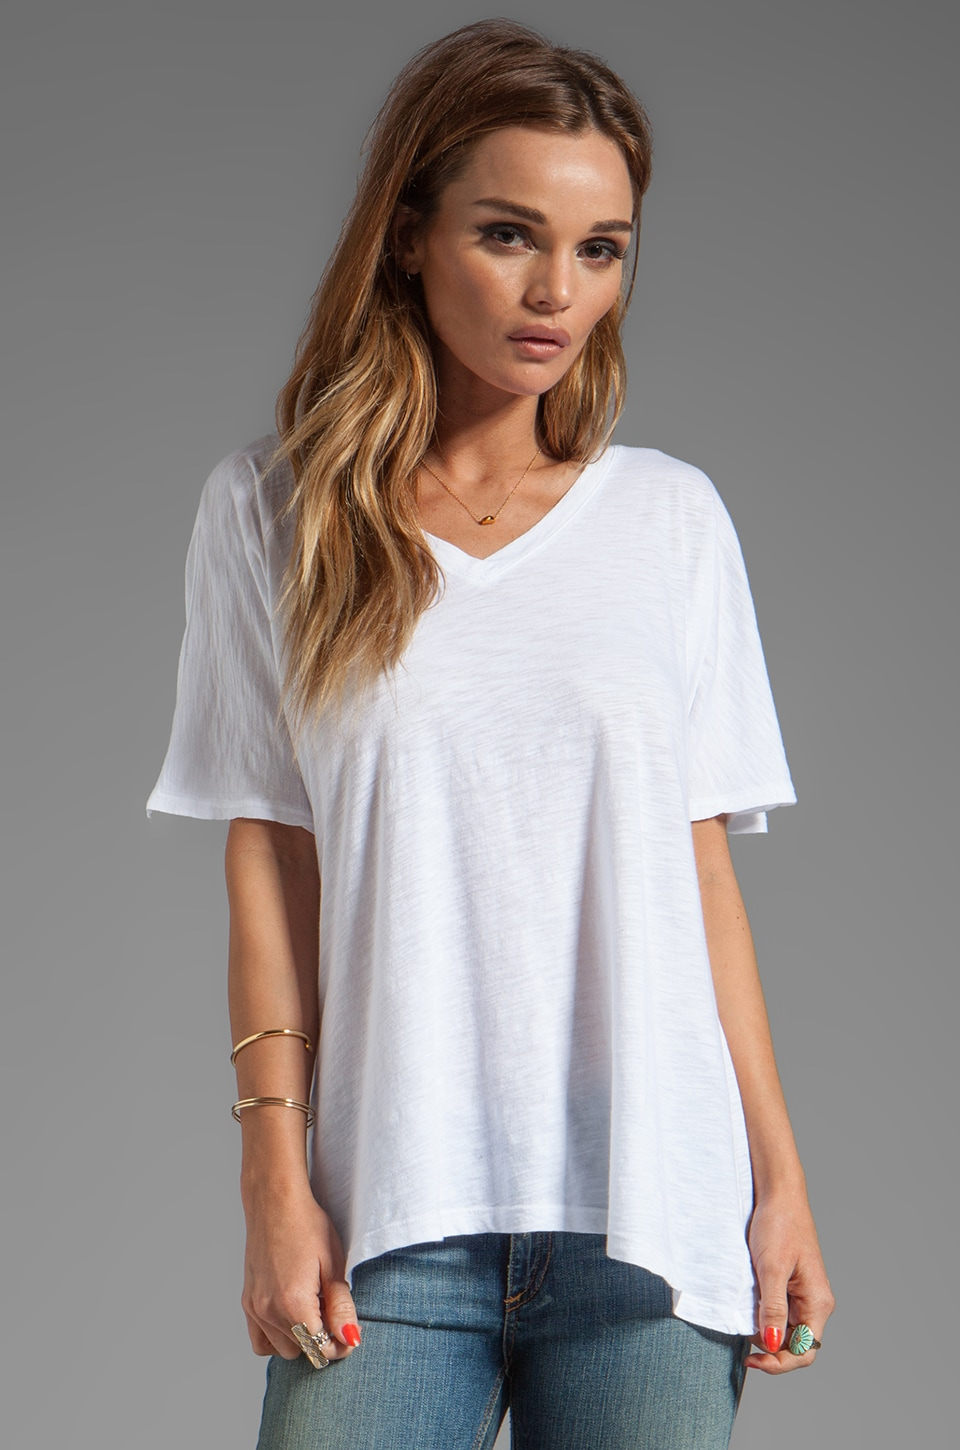 Daftbird Loose Fit Block V Tee in White